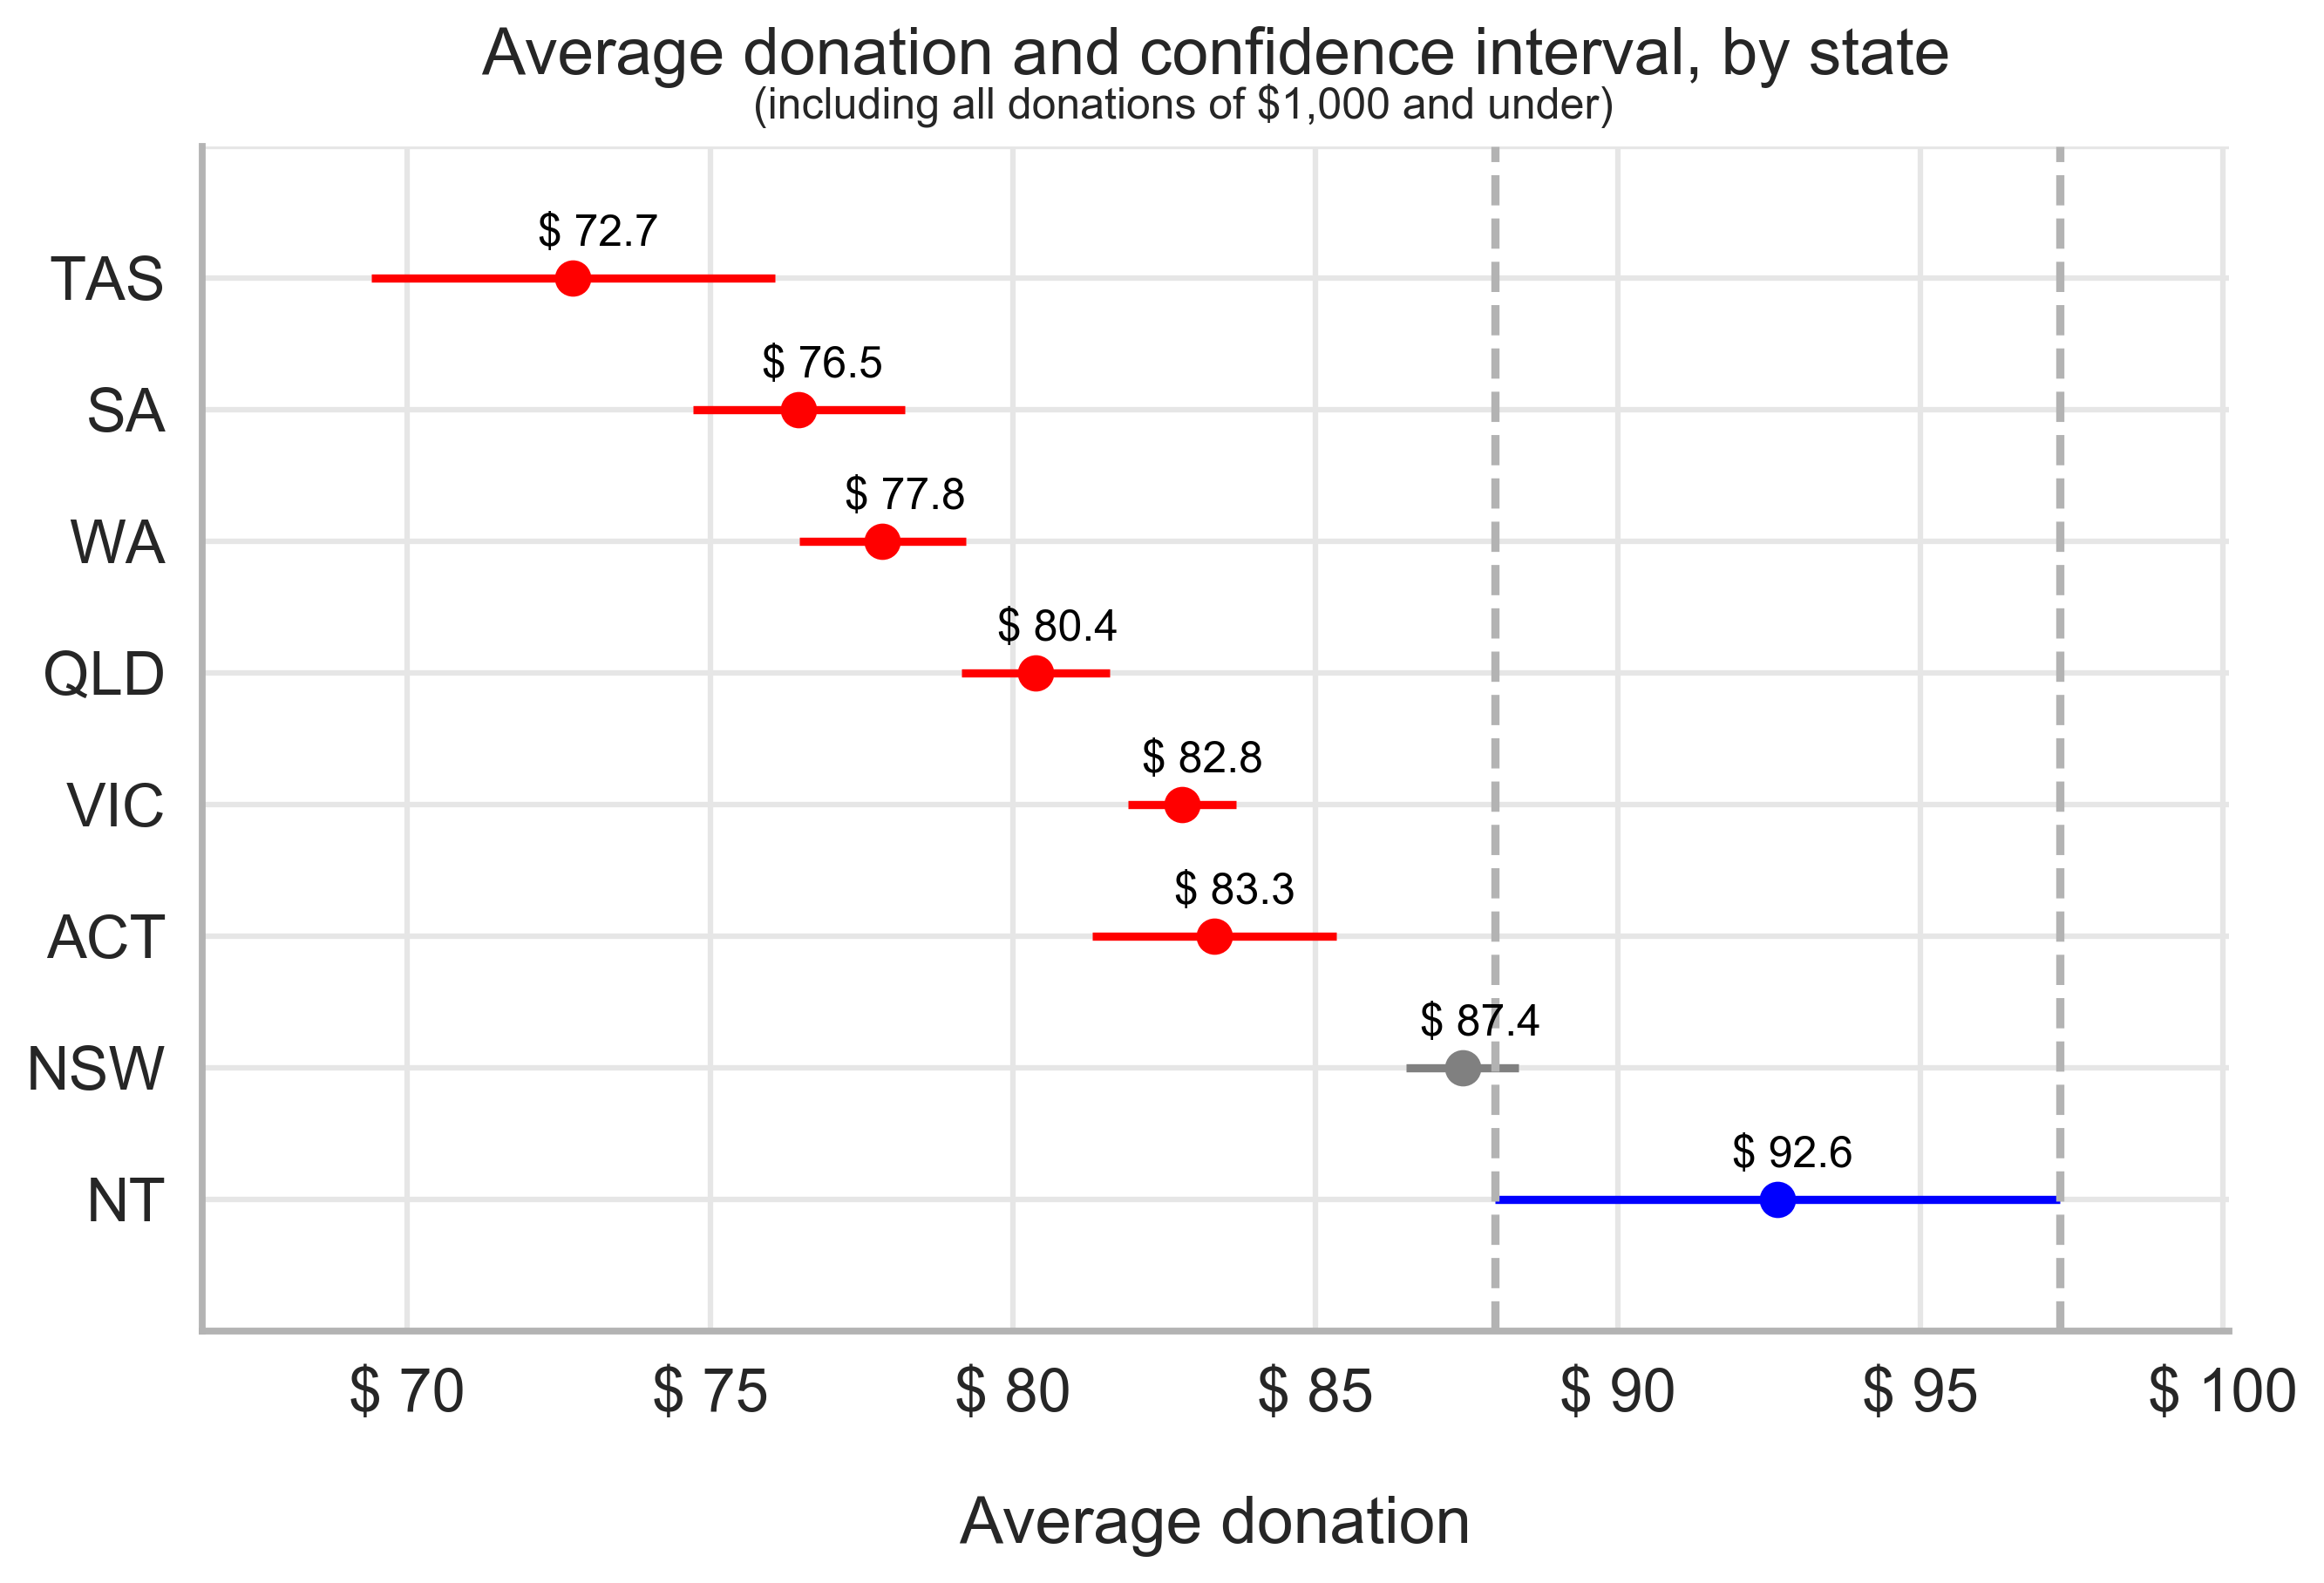 Figure 1 - NT average donation ranking - 1000 and under